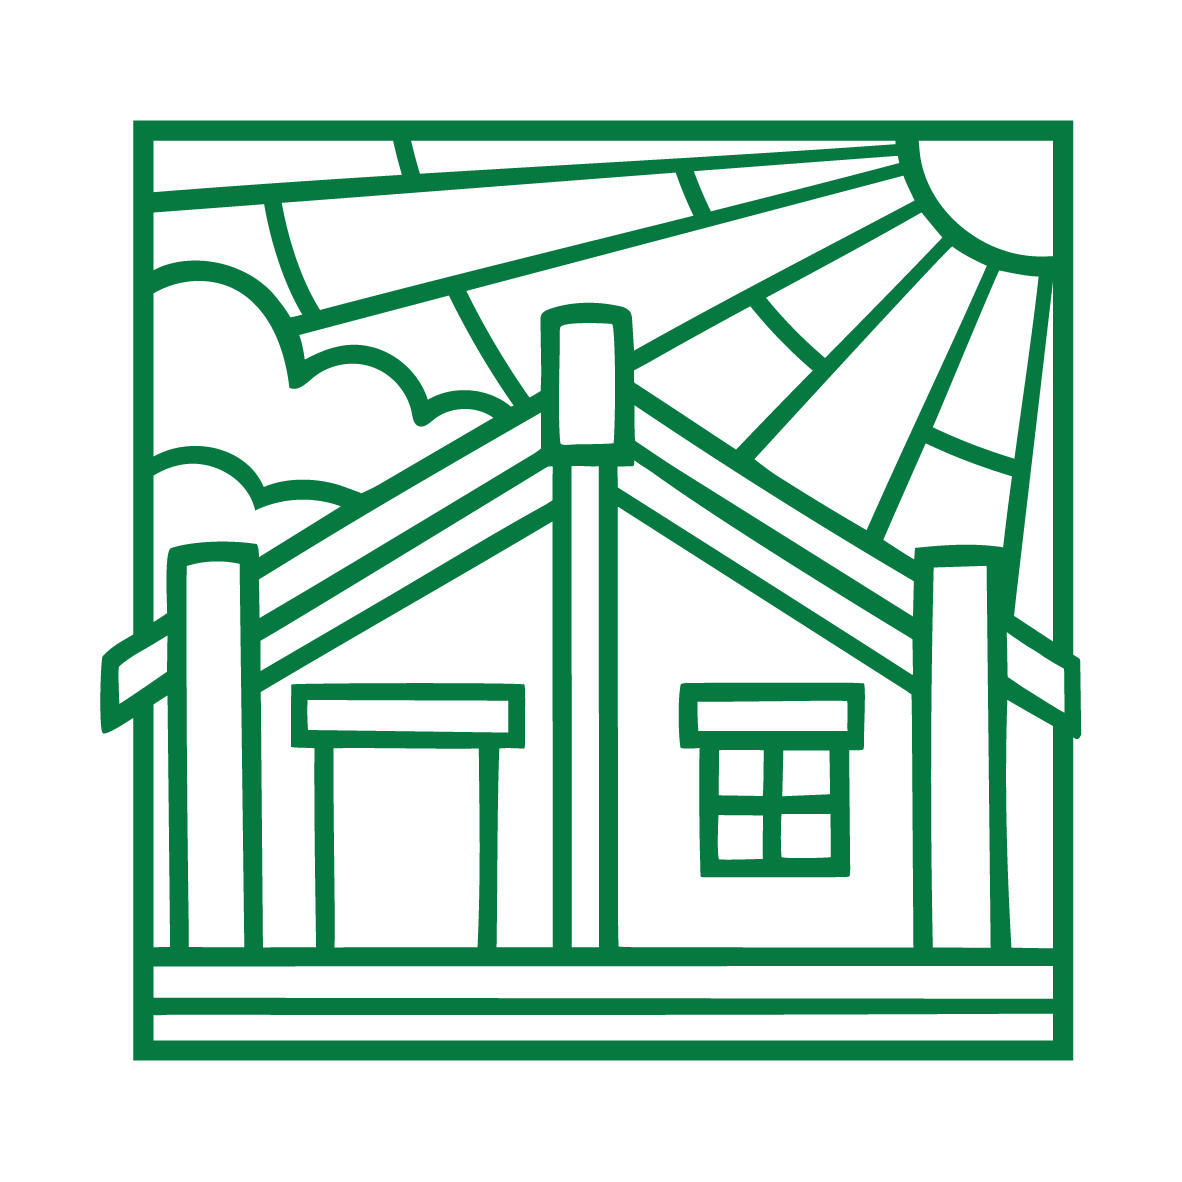 Greenpark School Values_Whanaungatanga - icon only.png